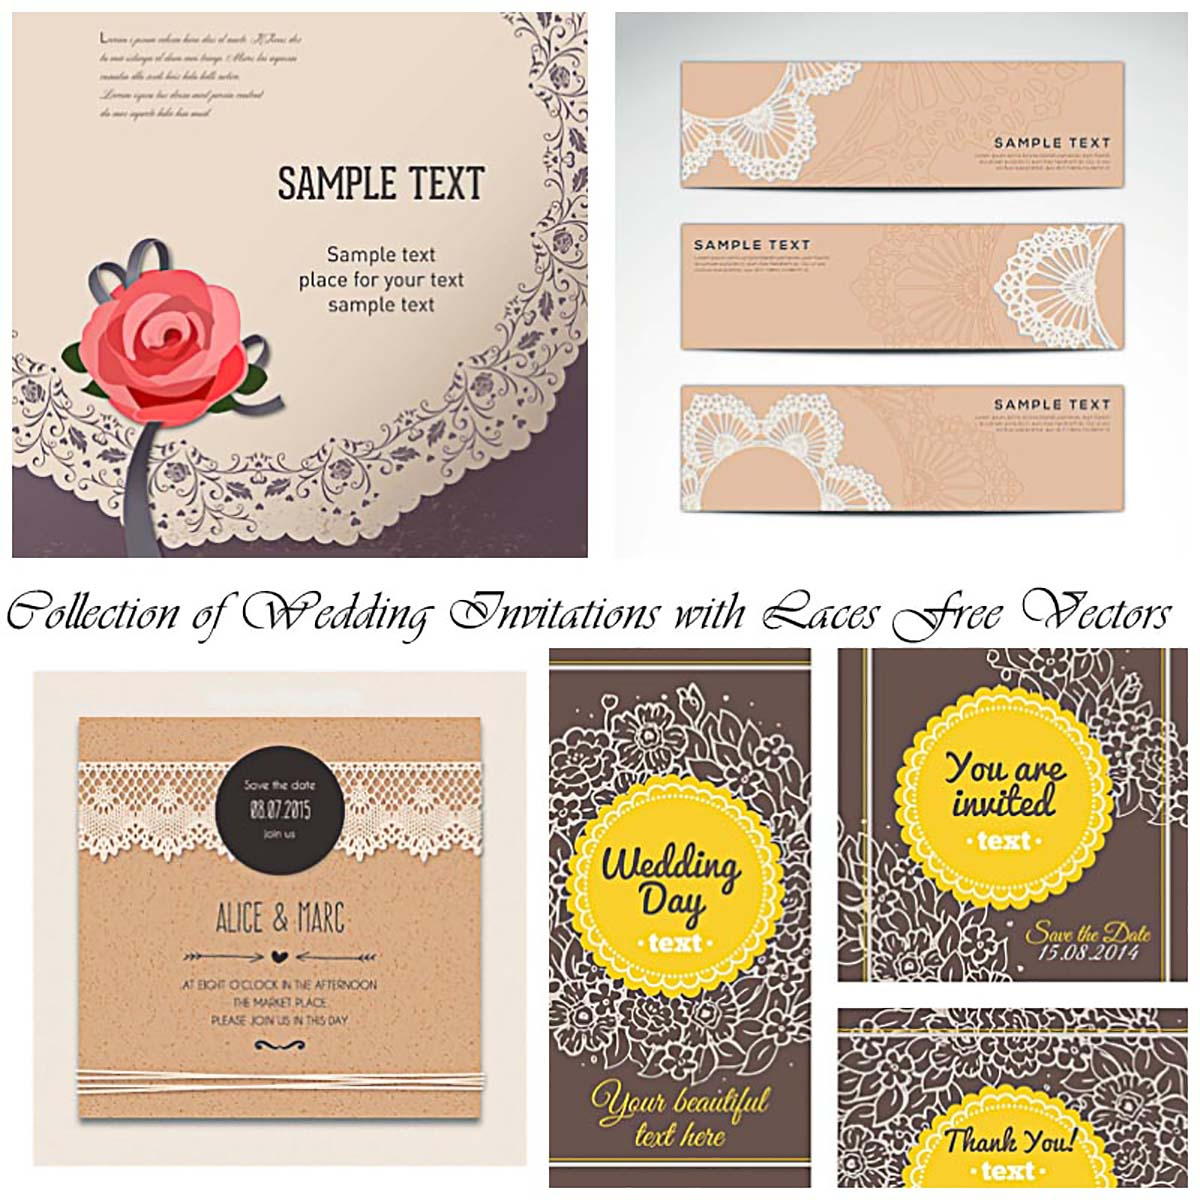 Cute wedding invitations with laces vector free download cute wedding invitations with laces vector stopboris Image collections